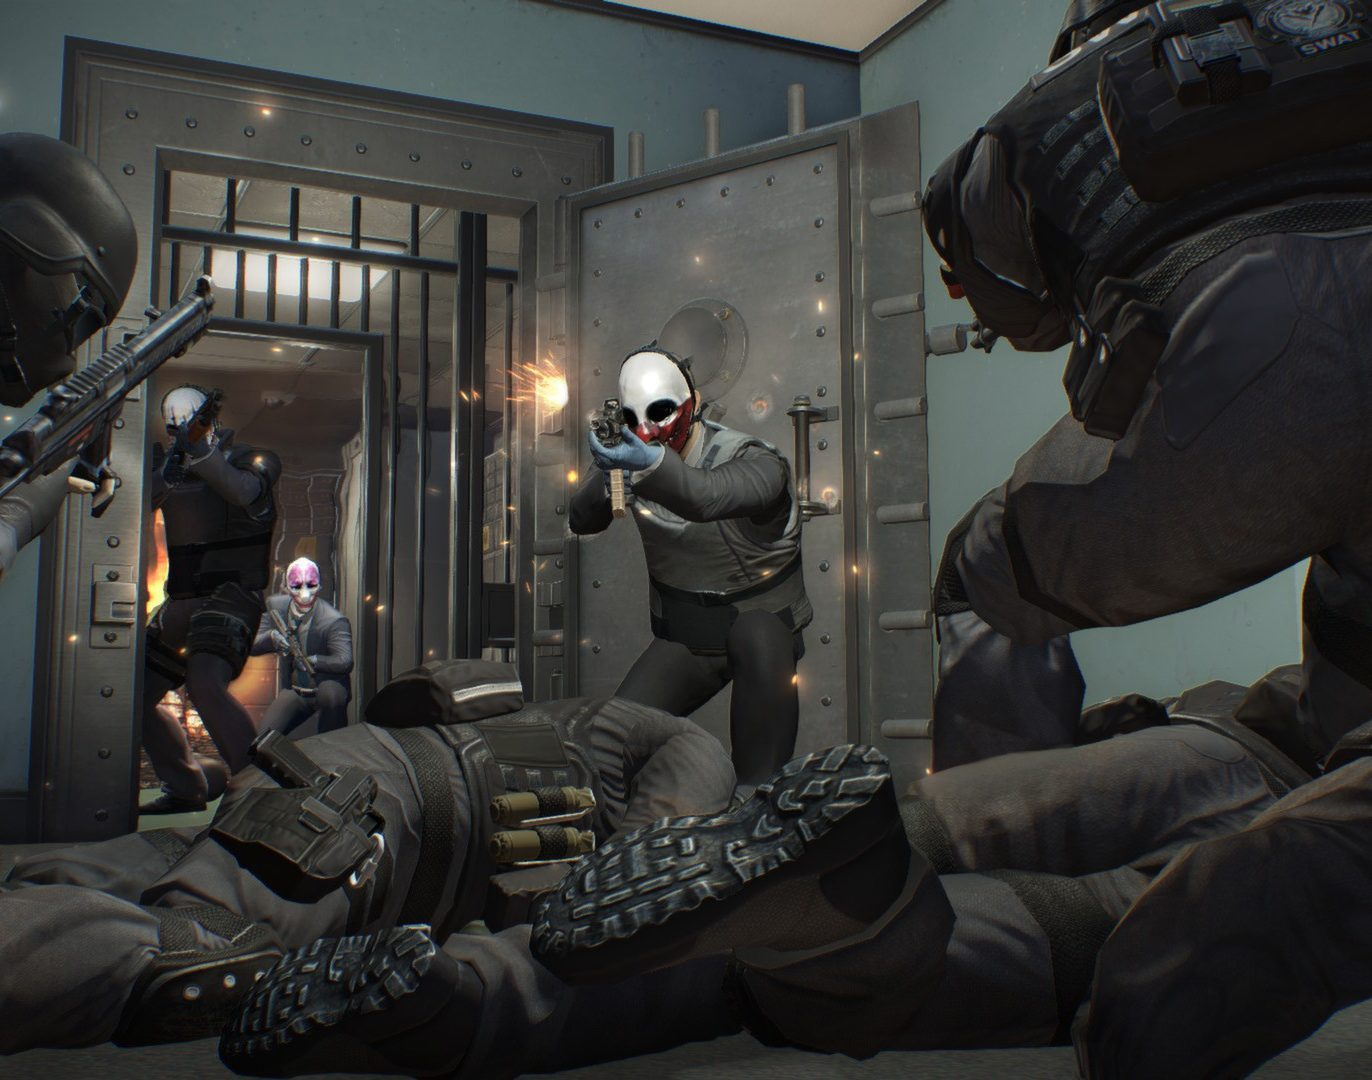 payday2screen7 e1605266105139 20 Video Games You Never Knew Were Inspired By Famous Movies